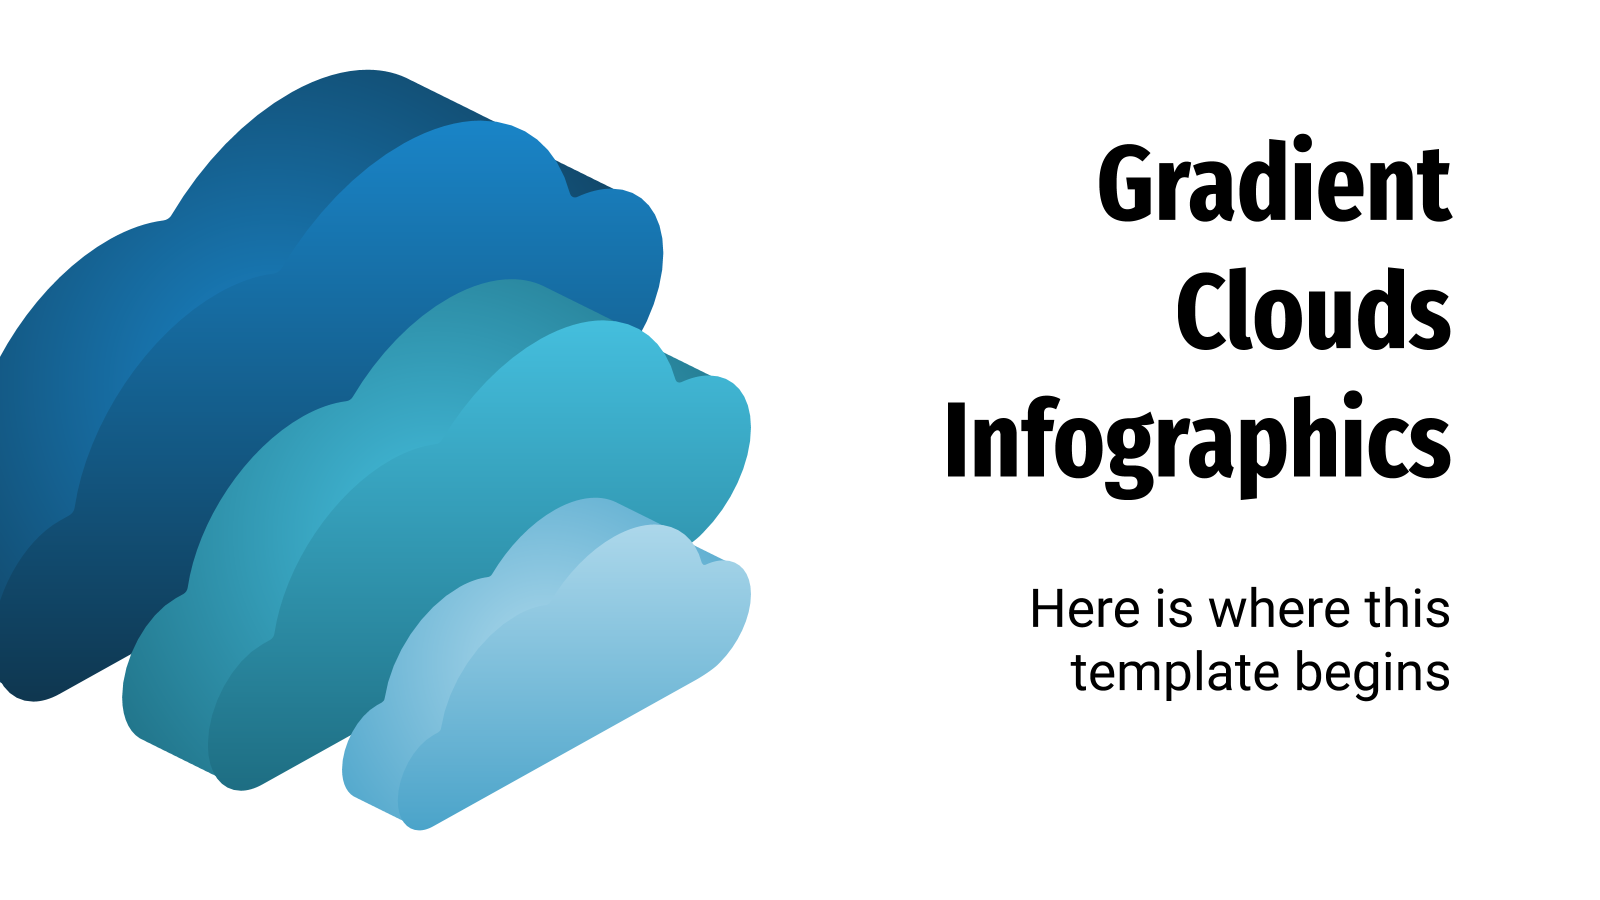 Gradient Clouds Infographics presentation template